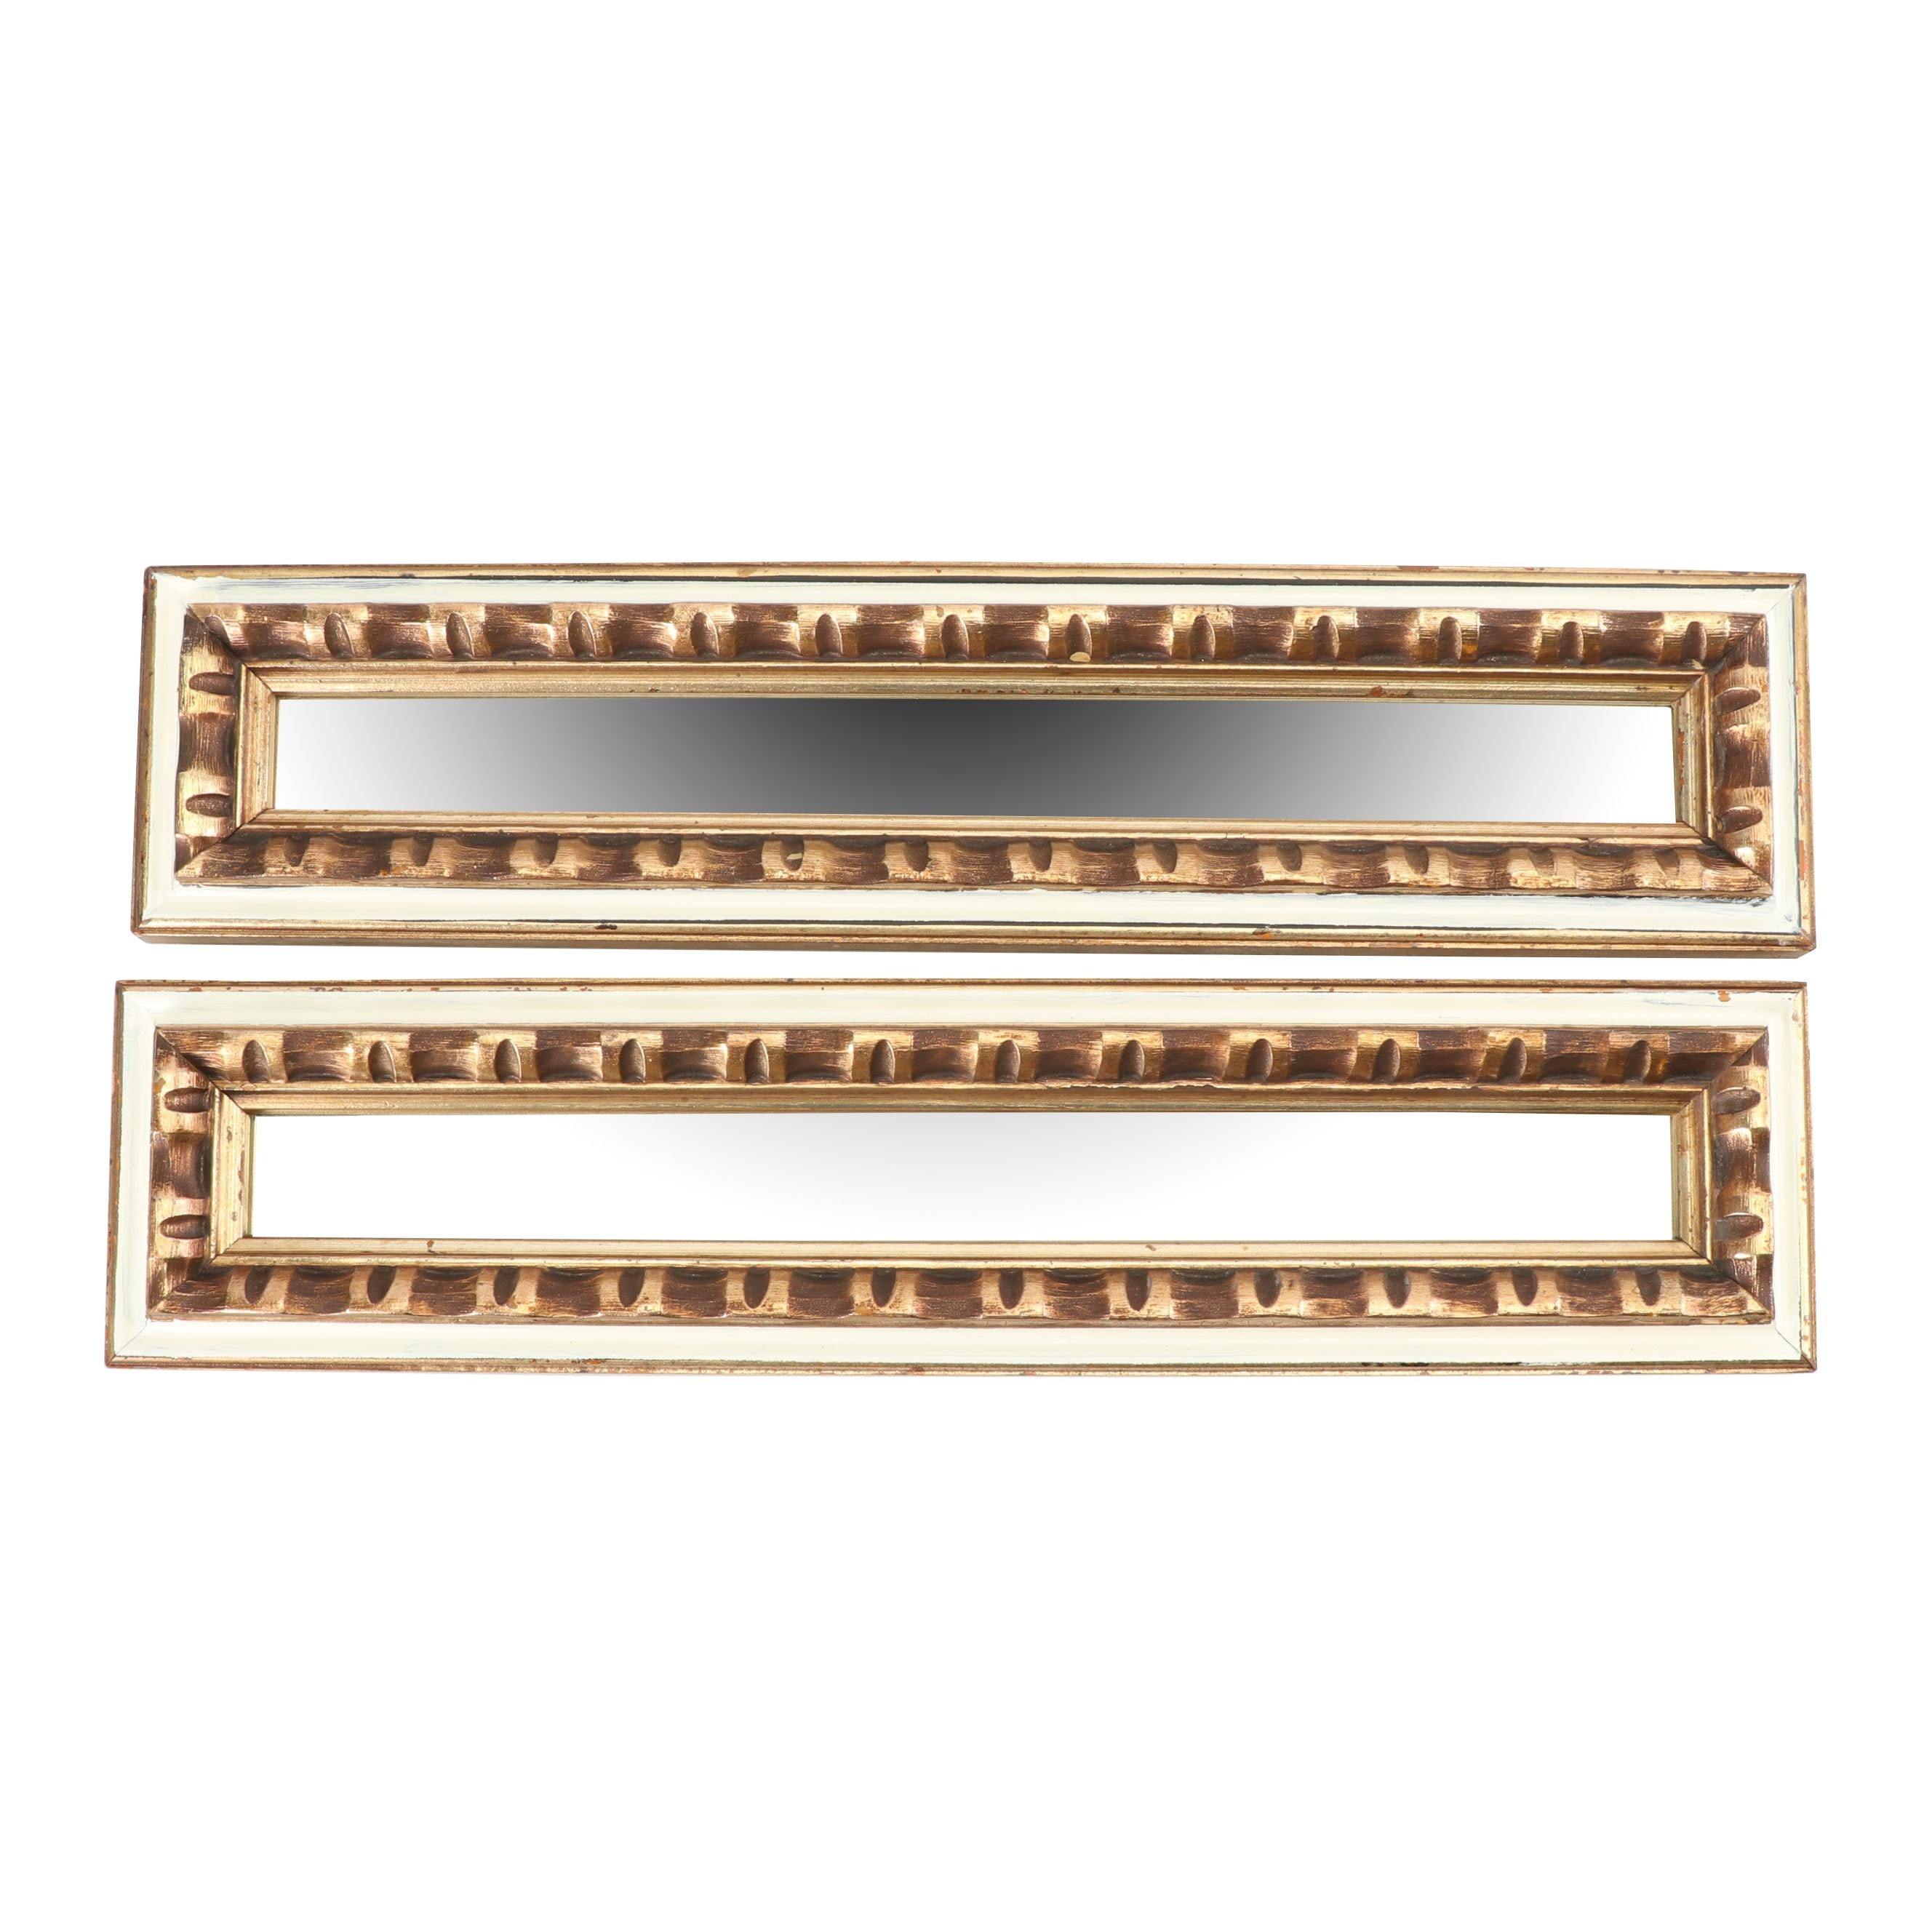 Gold Painted Wood Mirrors, 20th Century